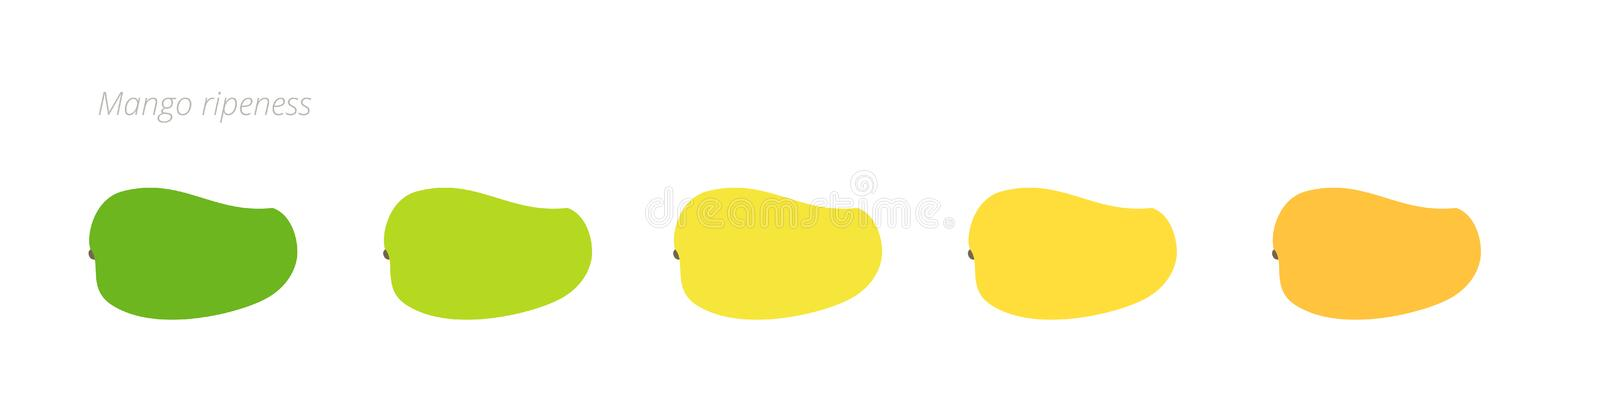 Mango ripeness stages chart. Colour gradation set fruit plant. Ripening plantains. From green to yellow and orange. Animation. Period progression. Flat vector stock illustration